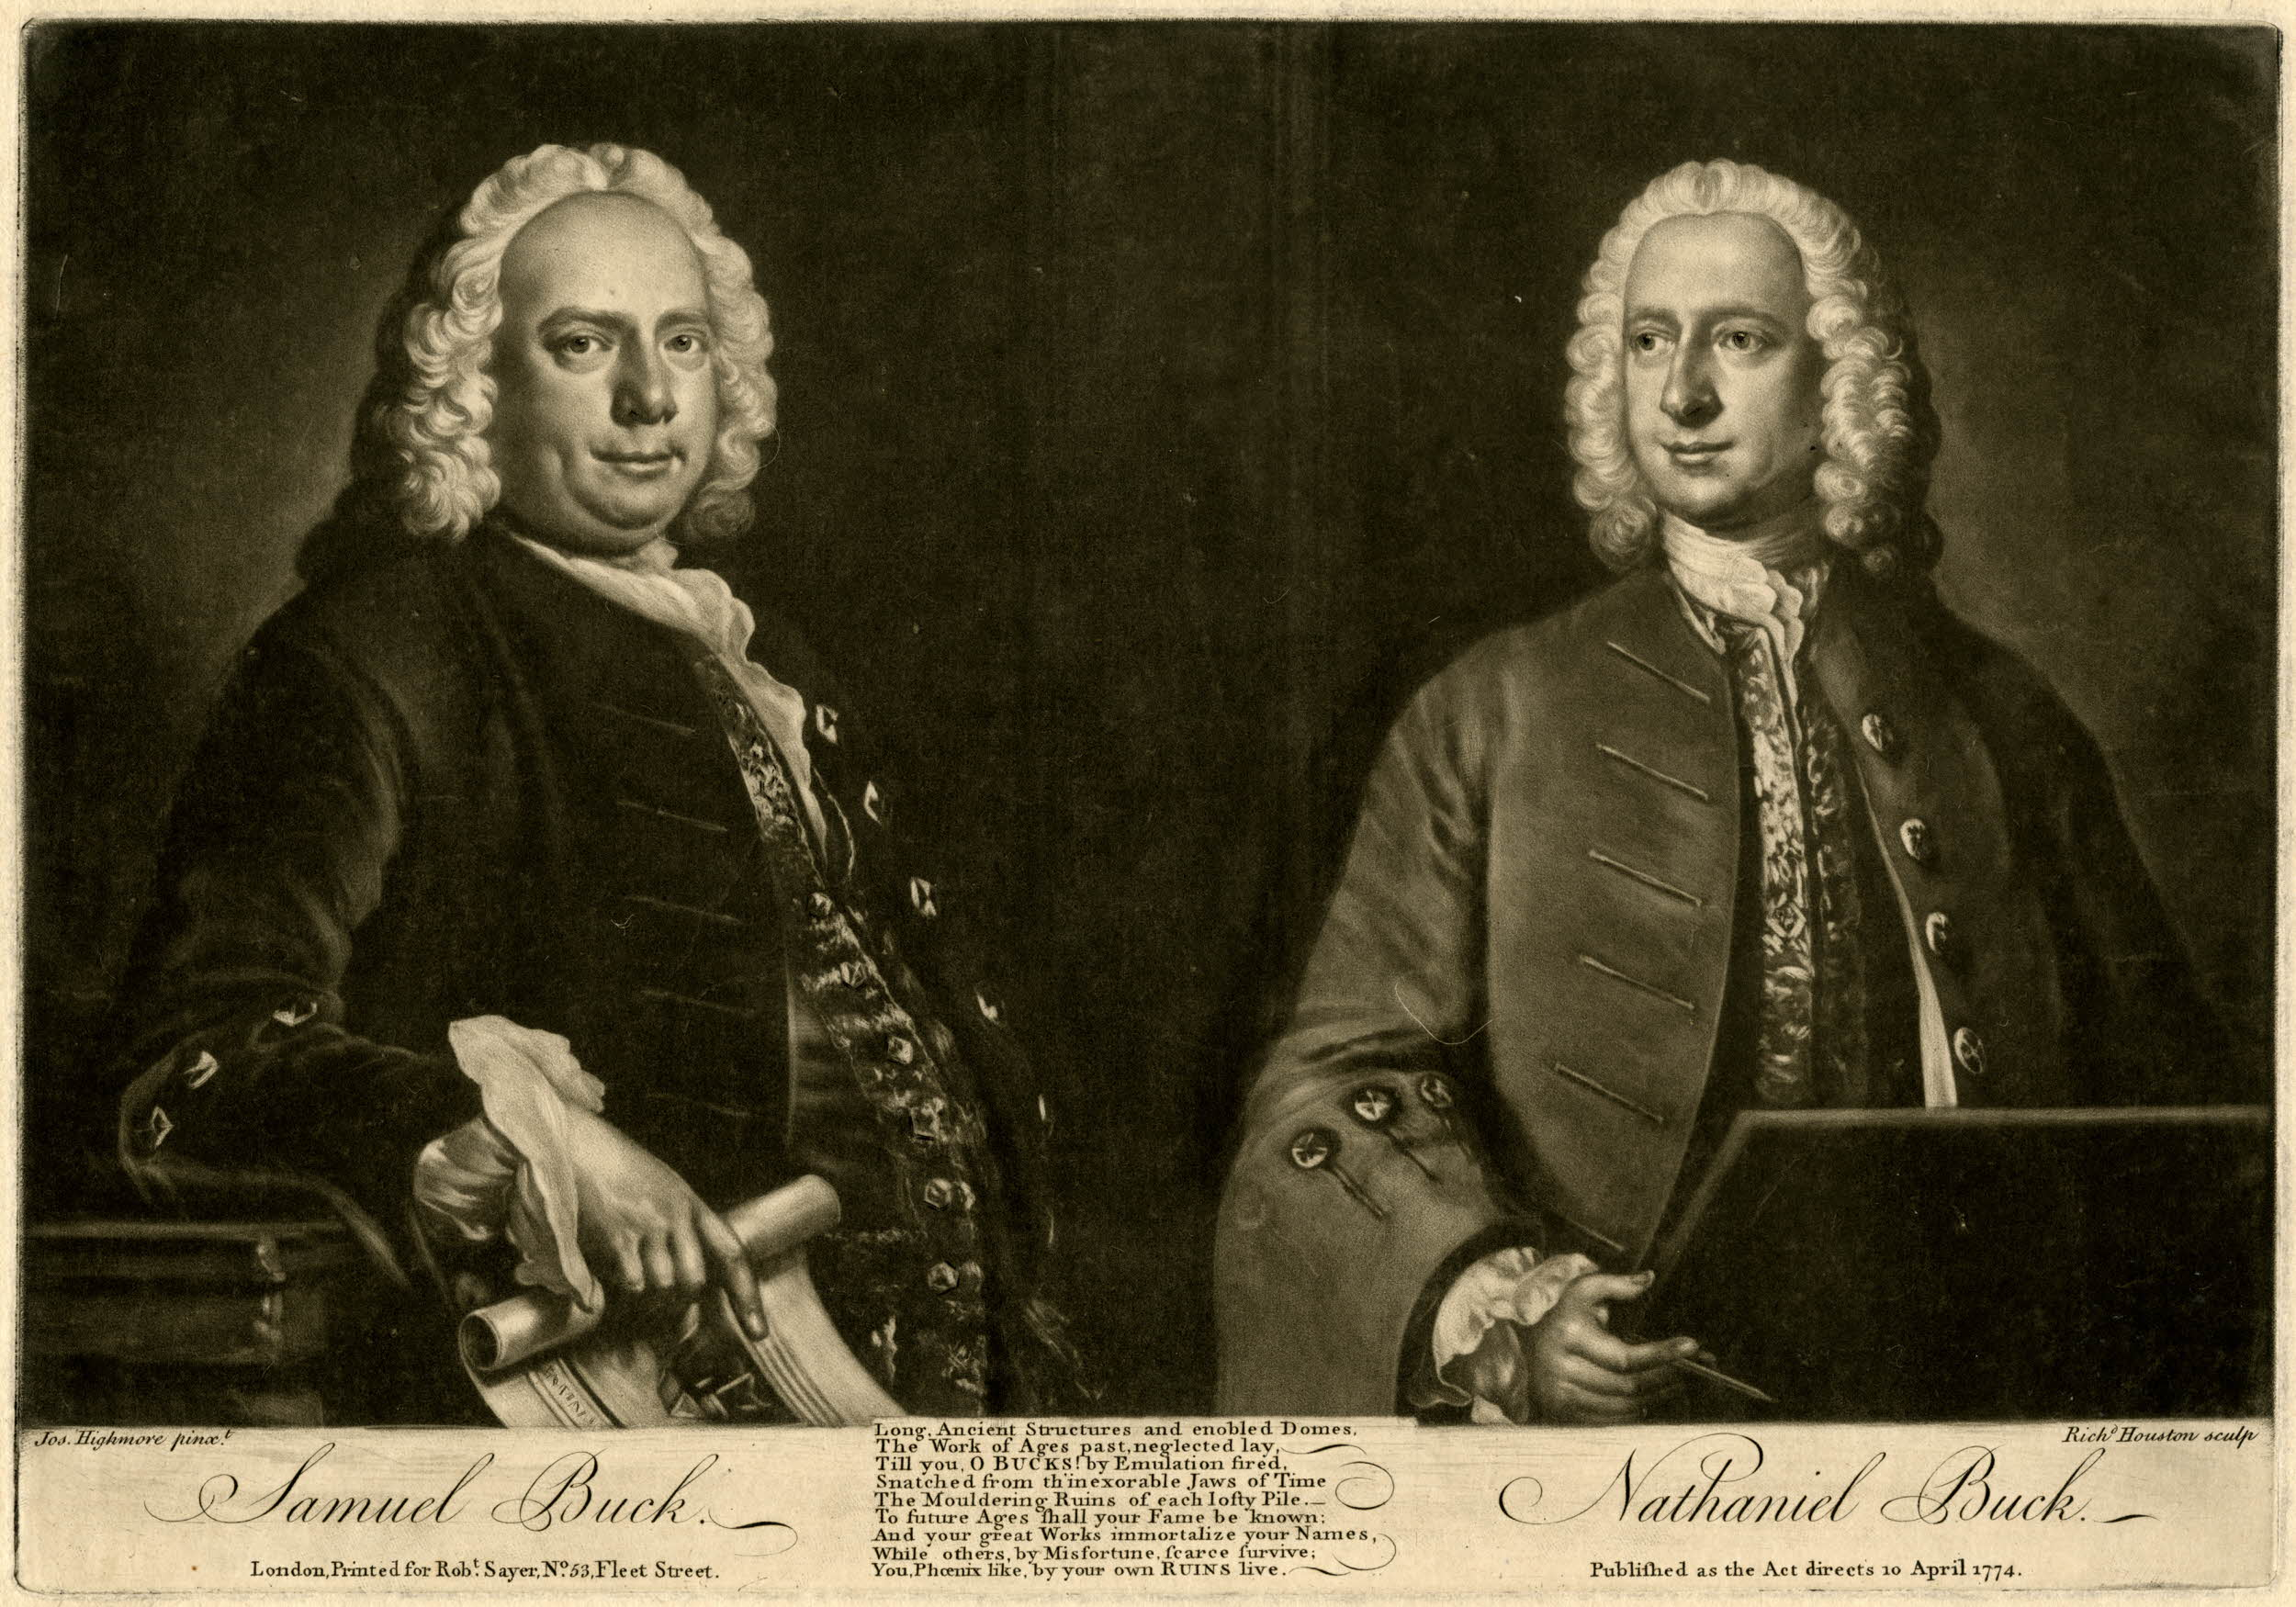 Richard Houston after Joseph Highmore, Samuel Buck; Nathaniel Buck, (London: R. Sayer, 1774), mezzotint, platemark 22.9 x 32.9 cm, British Museum, London, K,67.58